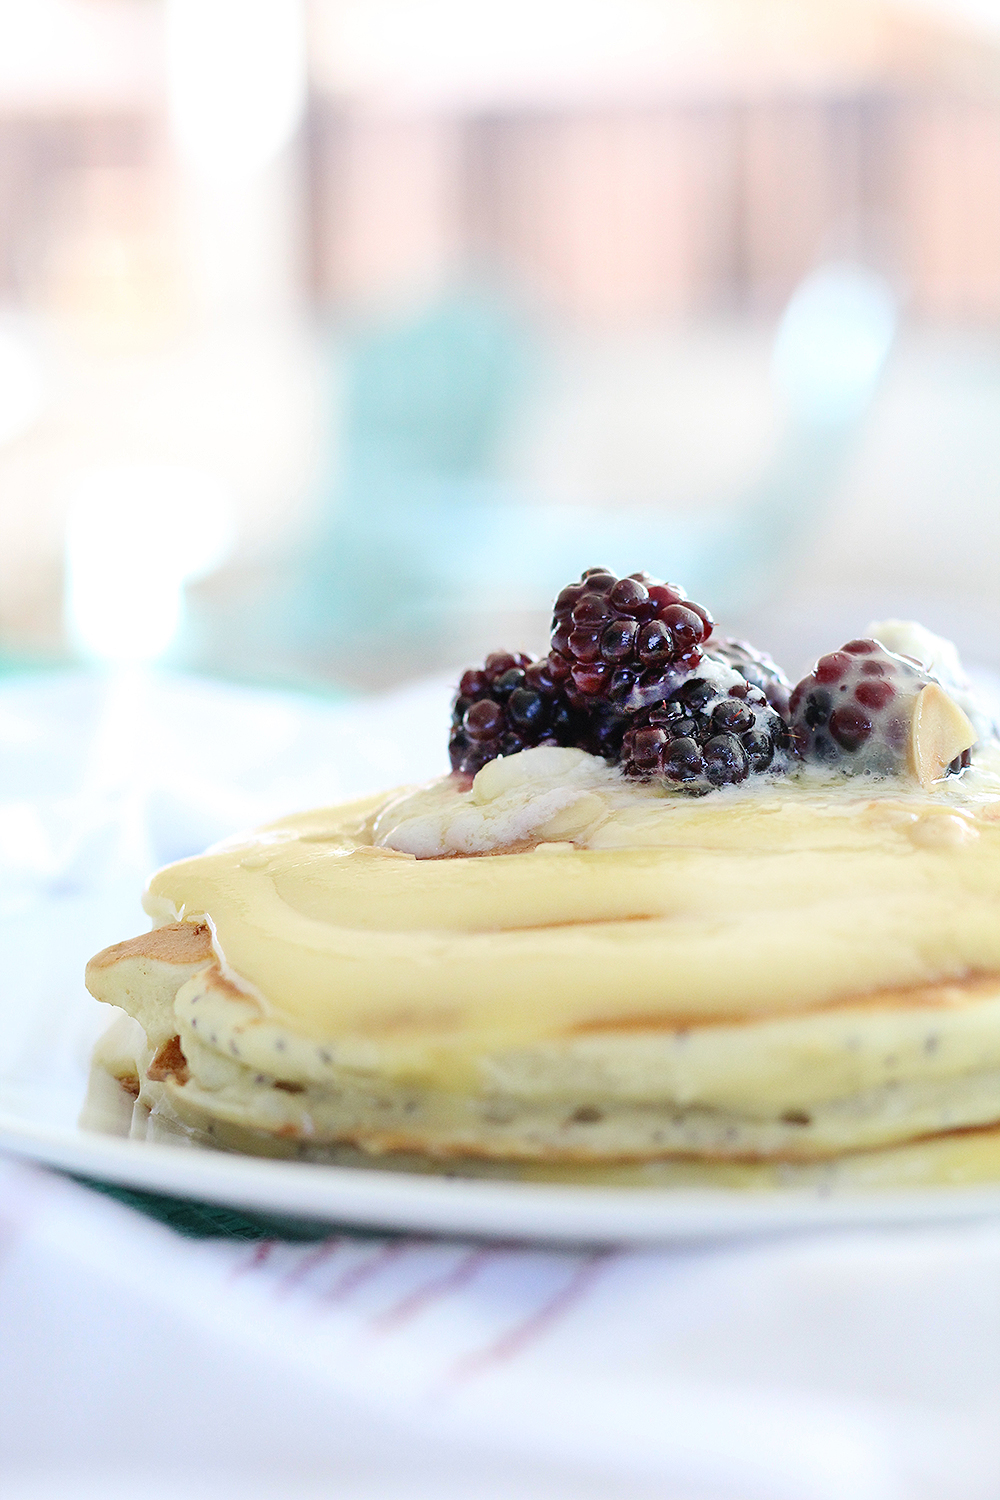 The Starburst Pancakes from Snooze are made from lemon buttermilk poppyseed batter then topped with a homemade lemon anglaise, macerated blackberries, ...